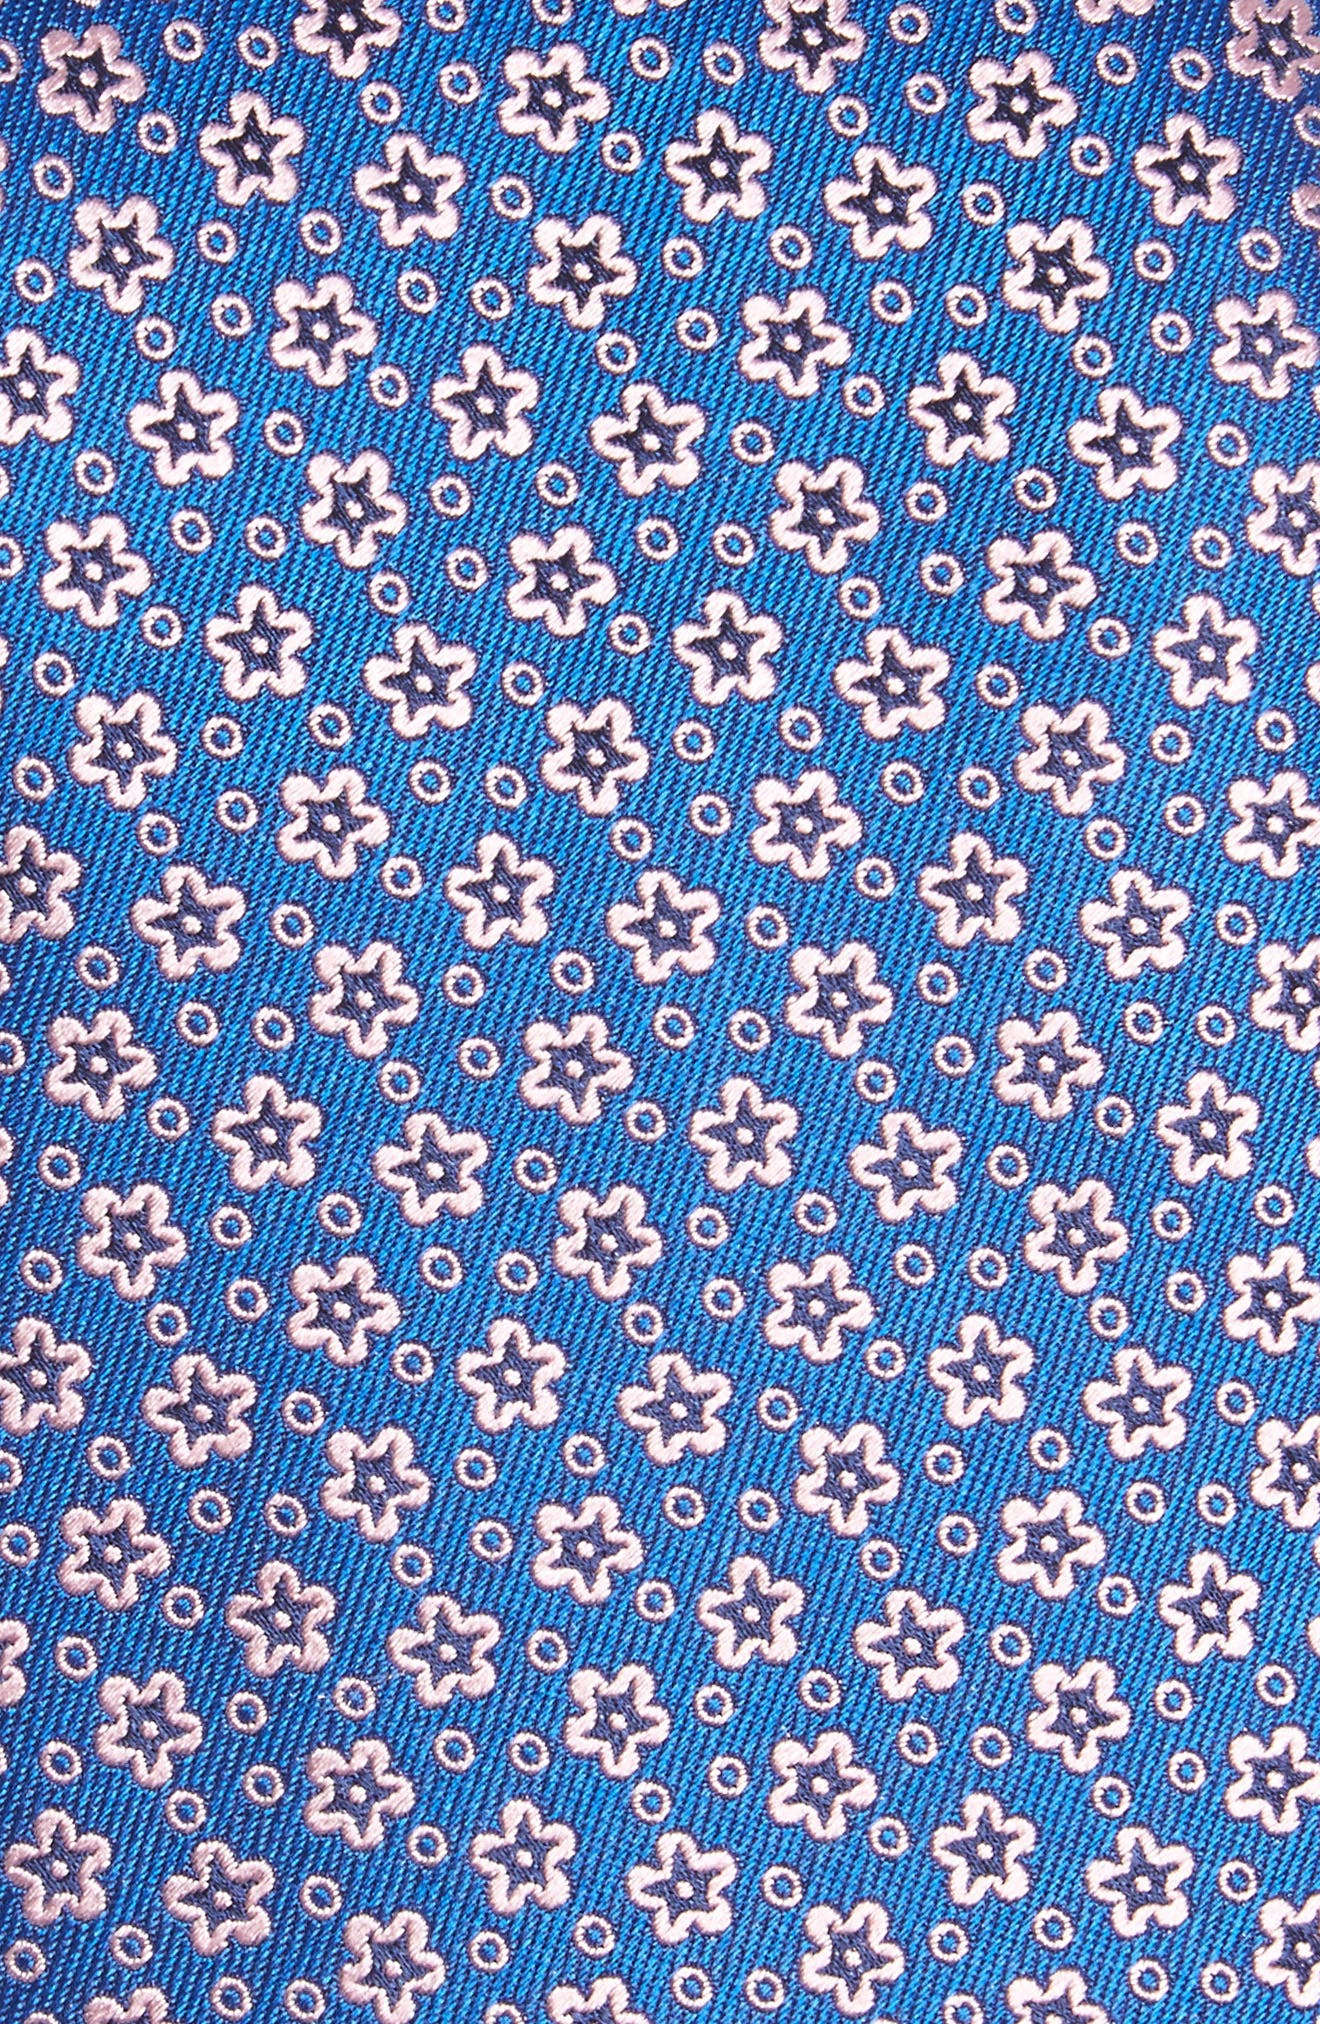 Floral Silk Tie,                             Alternate thumbnail 2, color,                             Blue